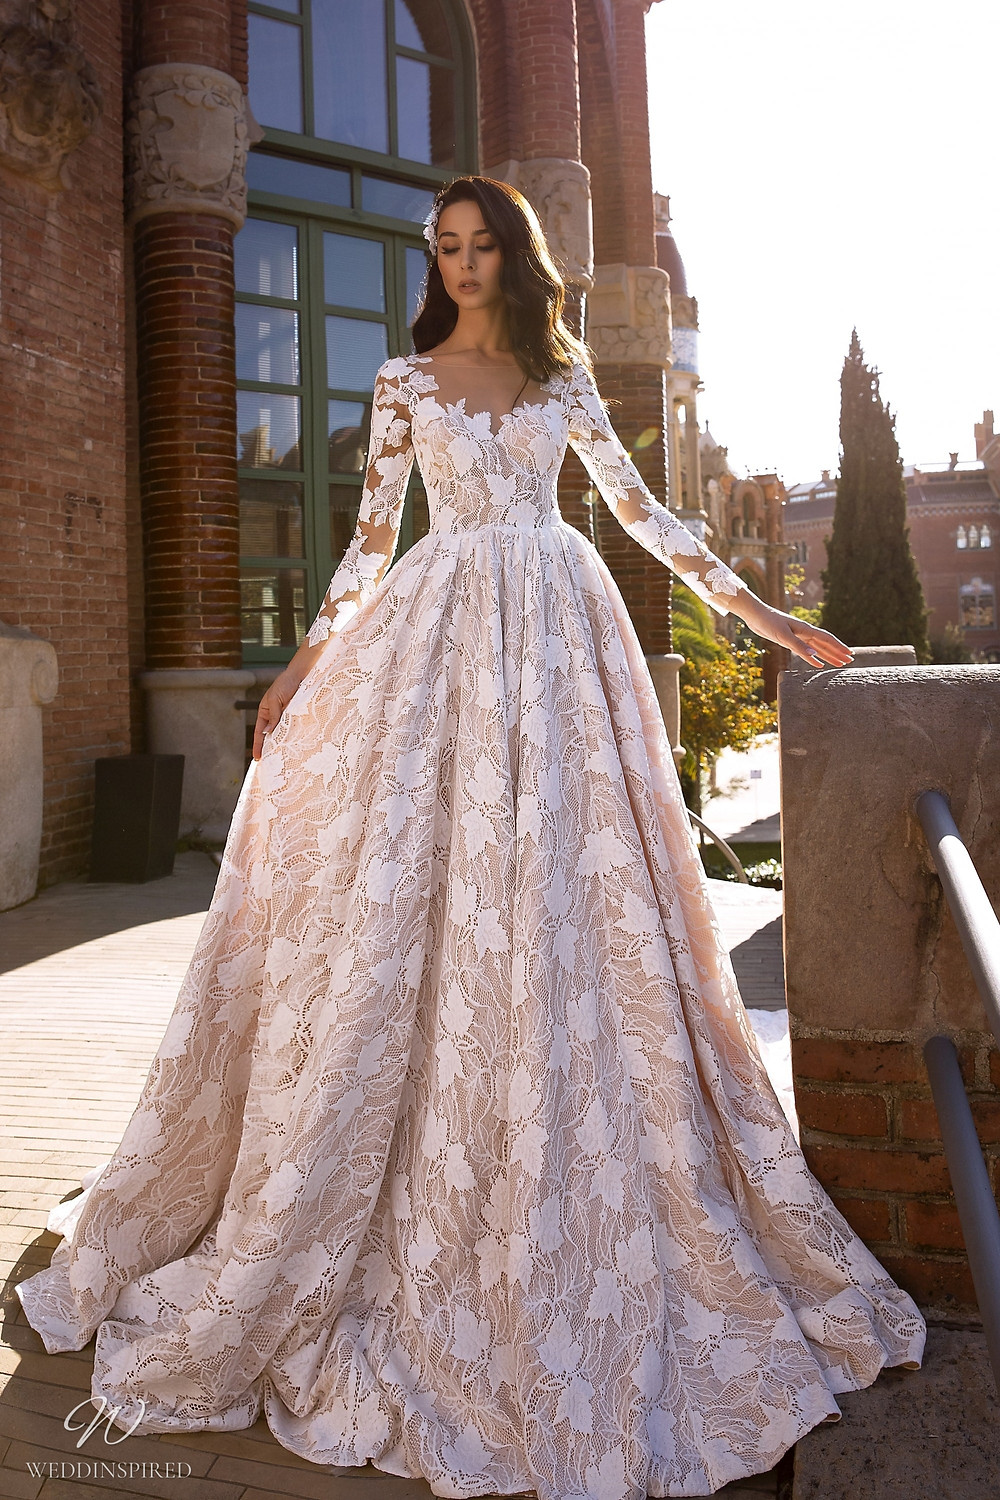 A Maks Mariano lace ball gown wedding dress with long sleeves